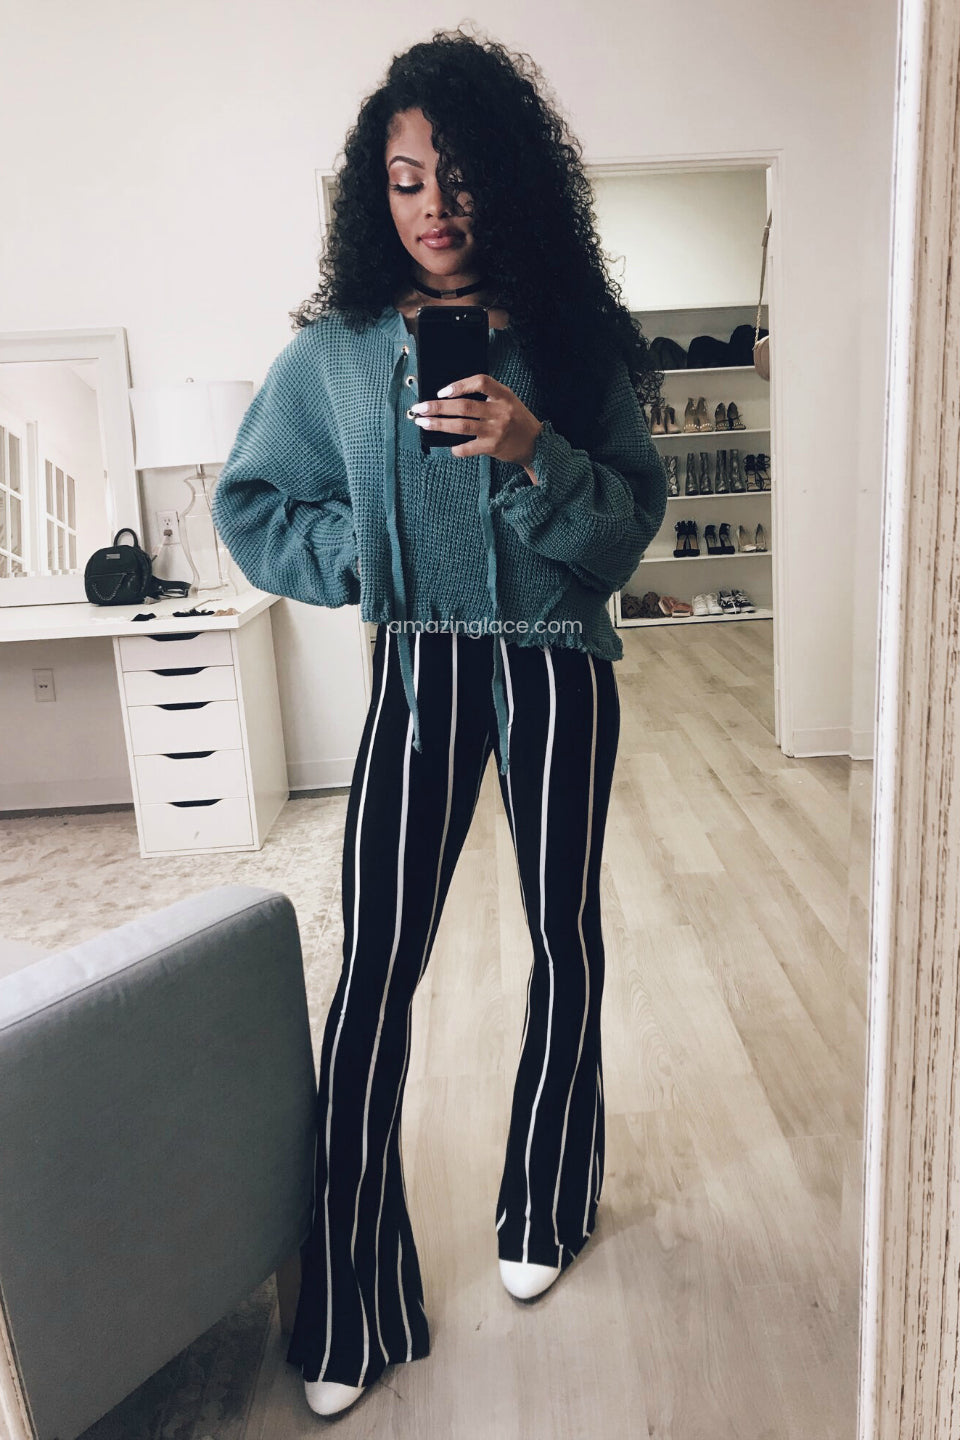 CROPPED SWEATER AND STRIPED PANTS OUTFIT